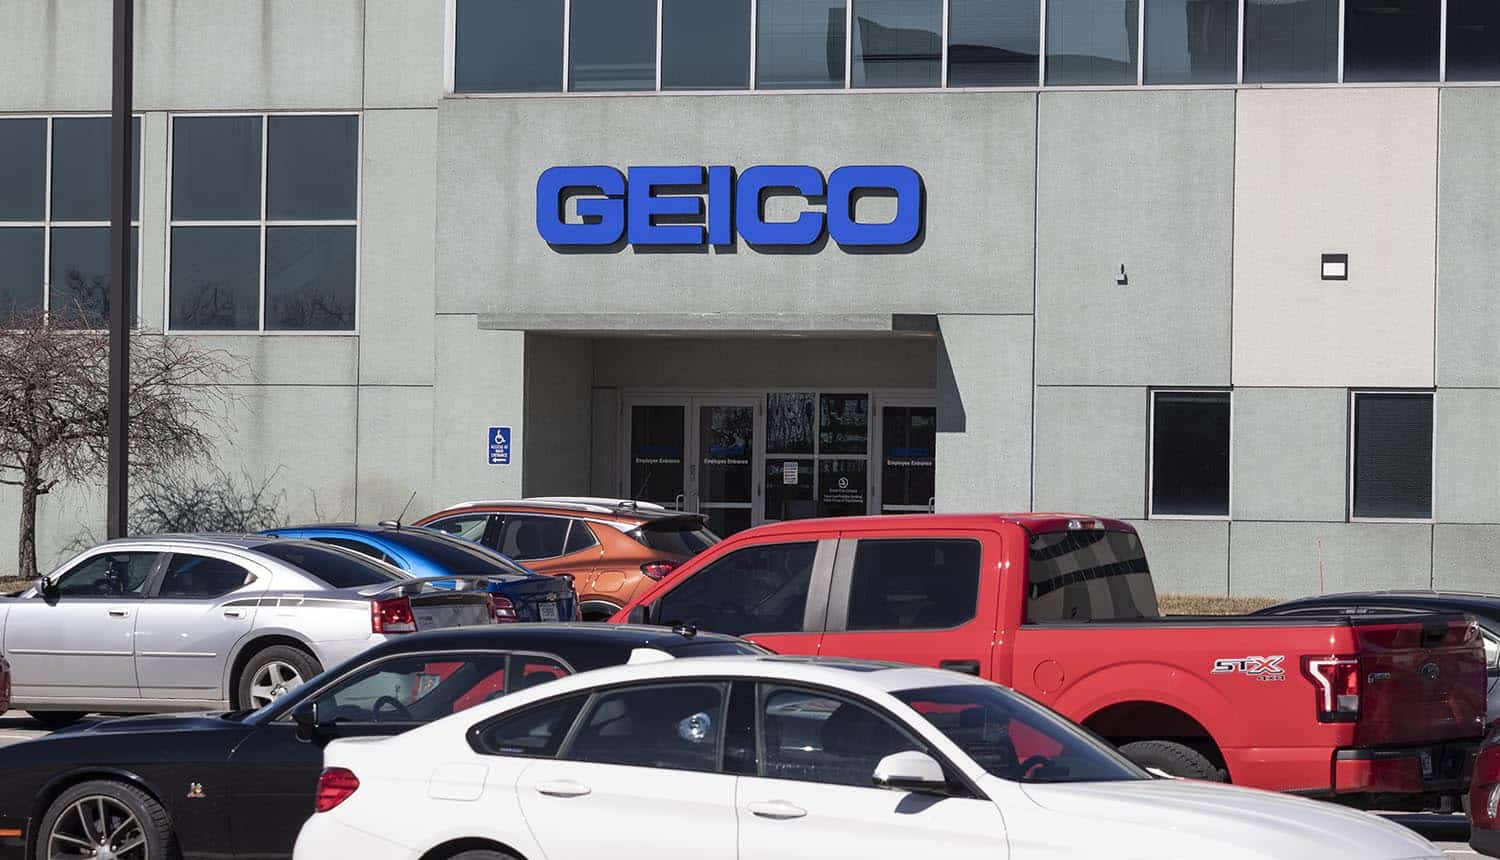 Geico Insurance office showing data breach leading to fraudulent unemployment claims